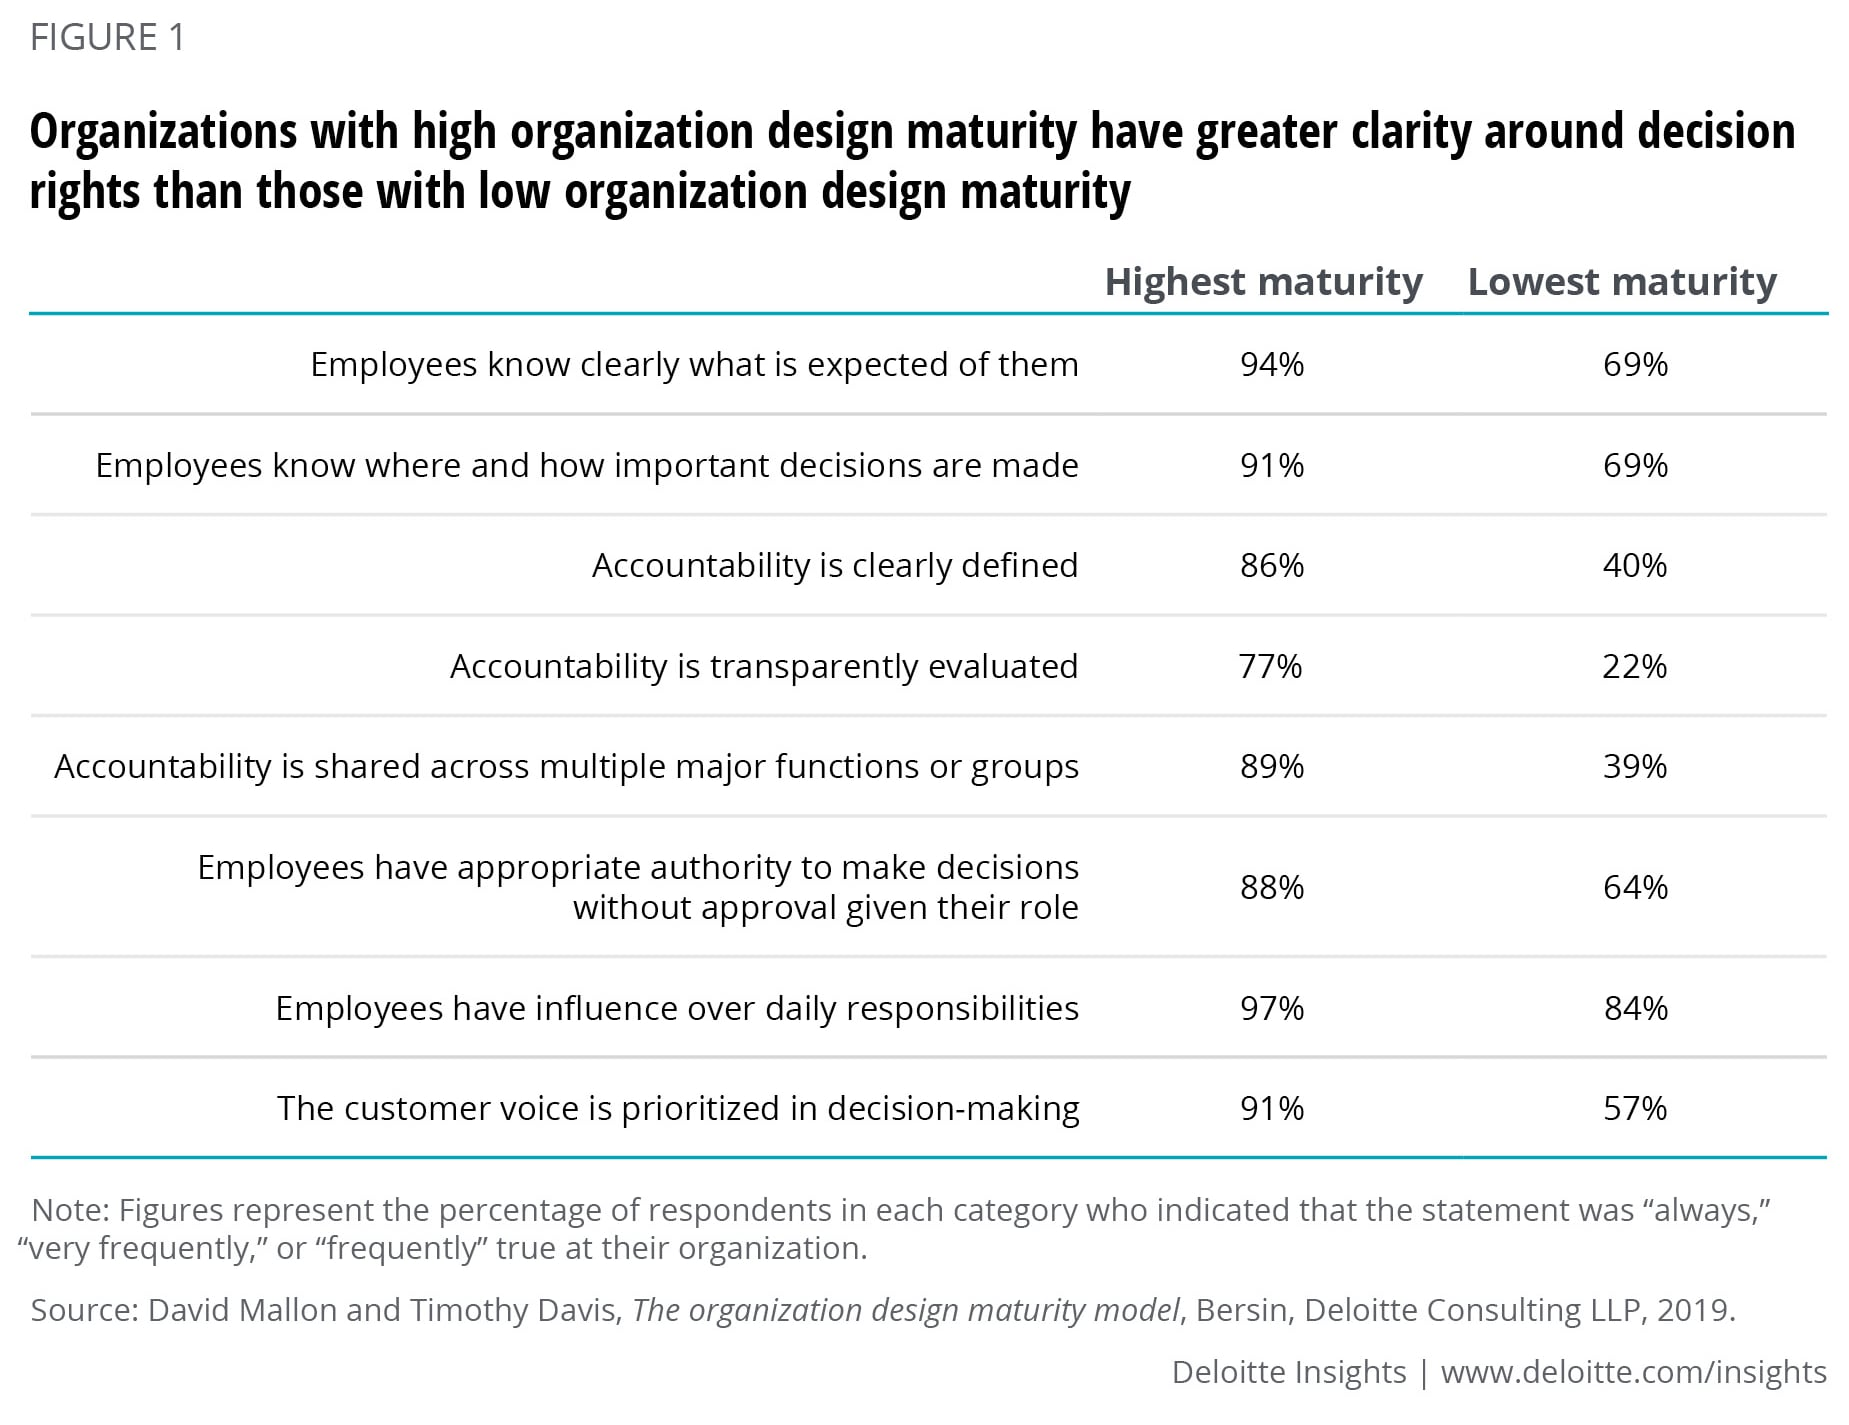 Organizations with high organization design maturity have greater clarity around decision rights than those with low organization design maturity